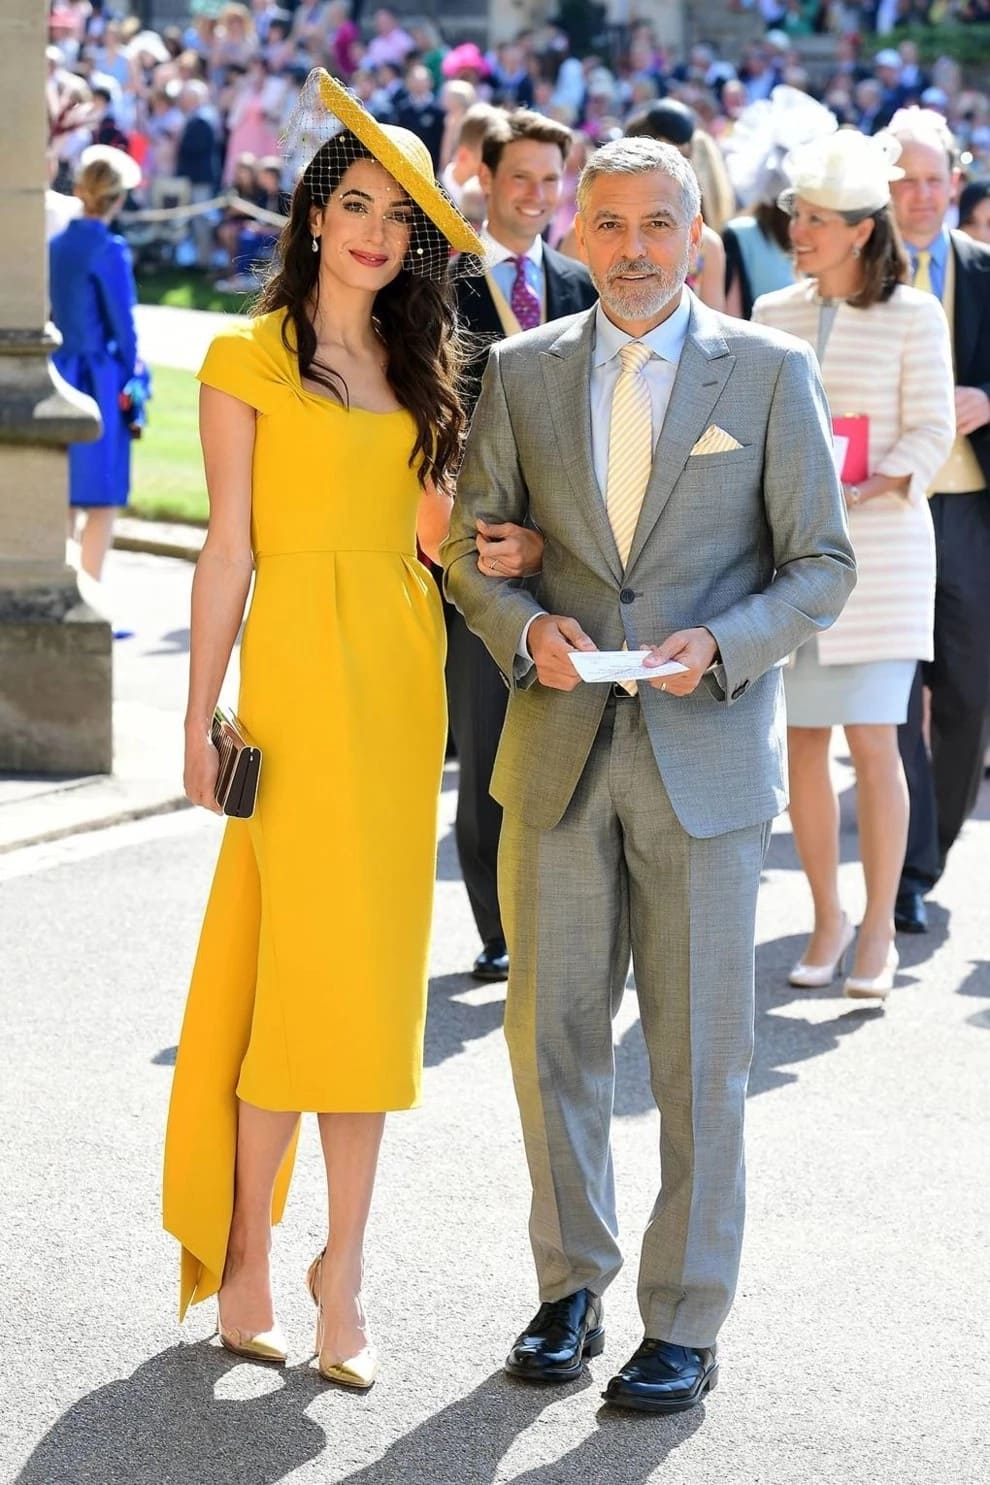 George Clooney and 40-year-old lawyer Amal Clooney